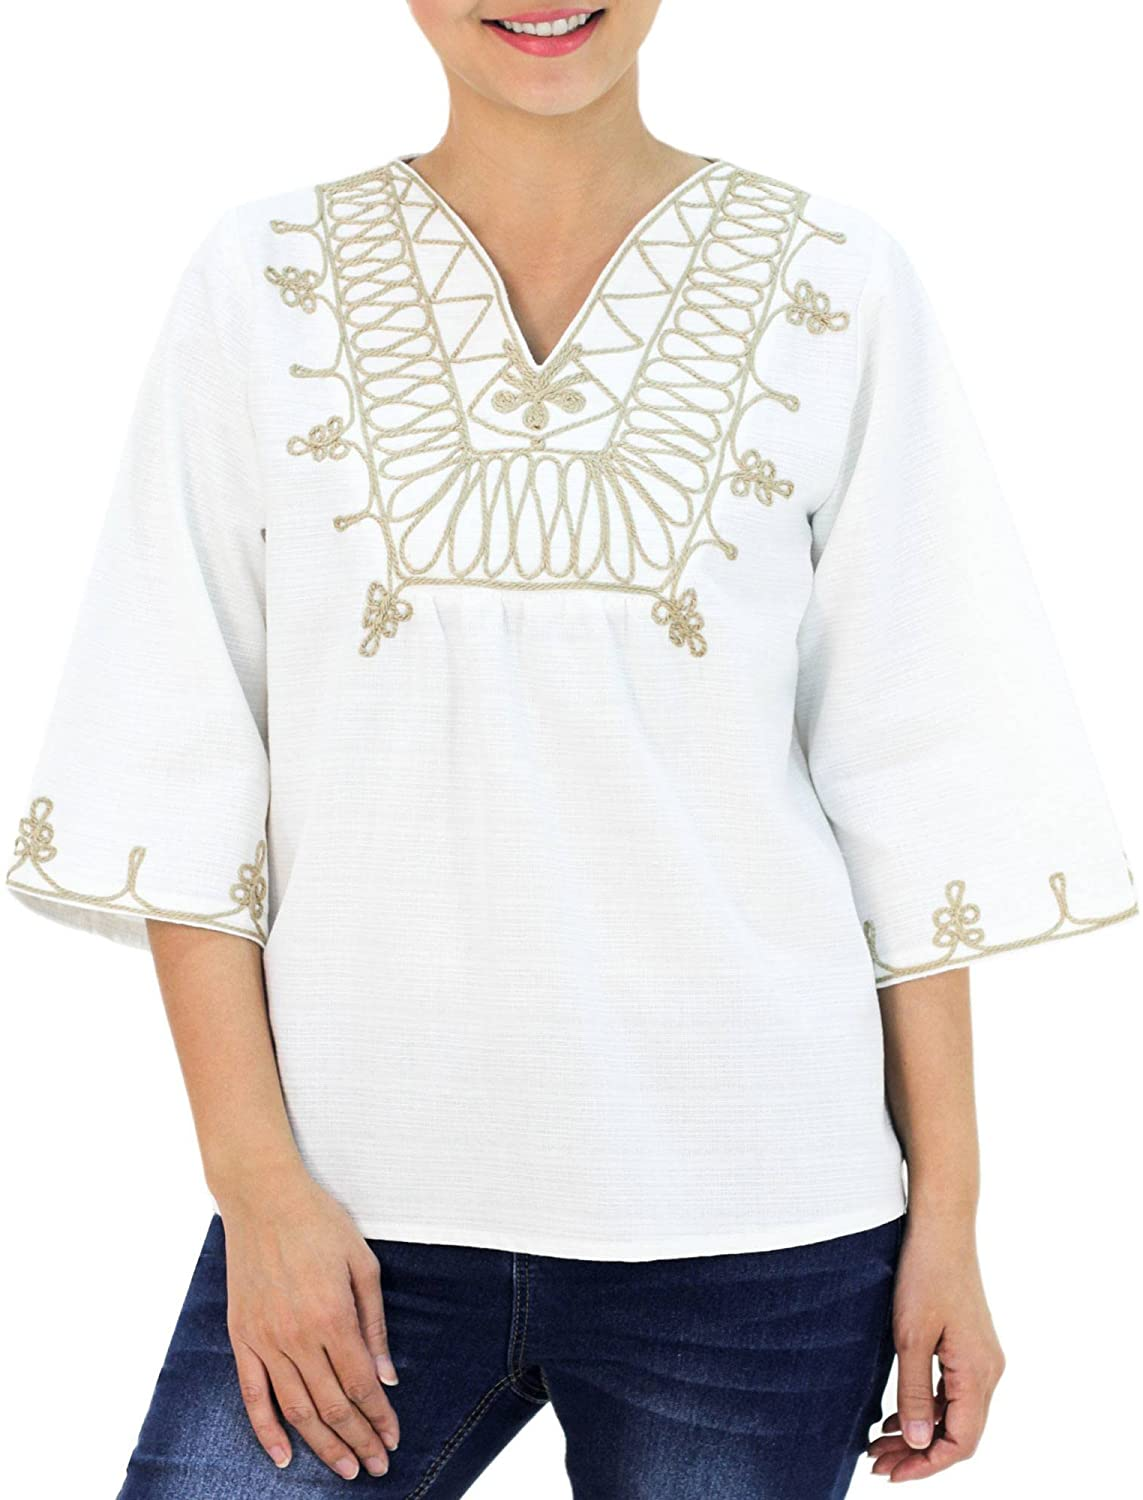 NOVICA White Cotton Blouse, Dance'